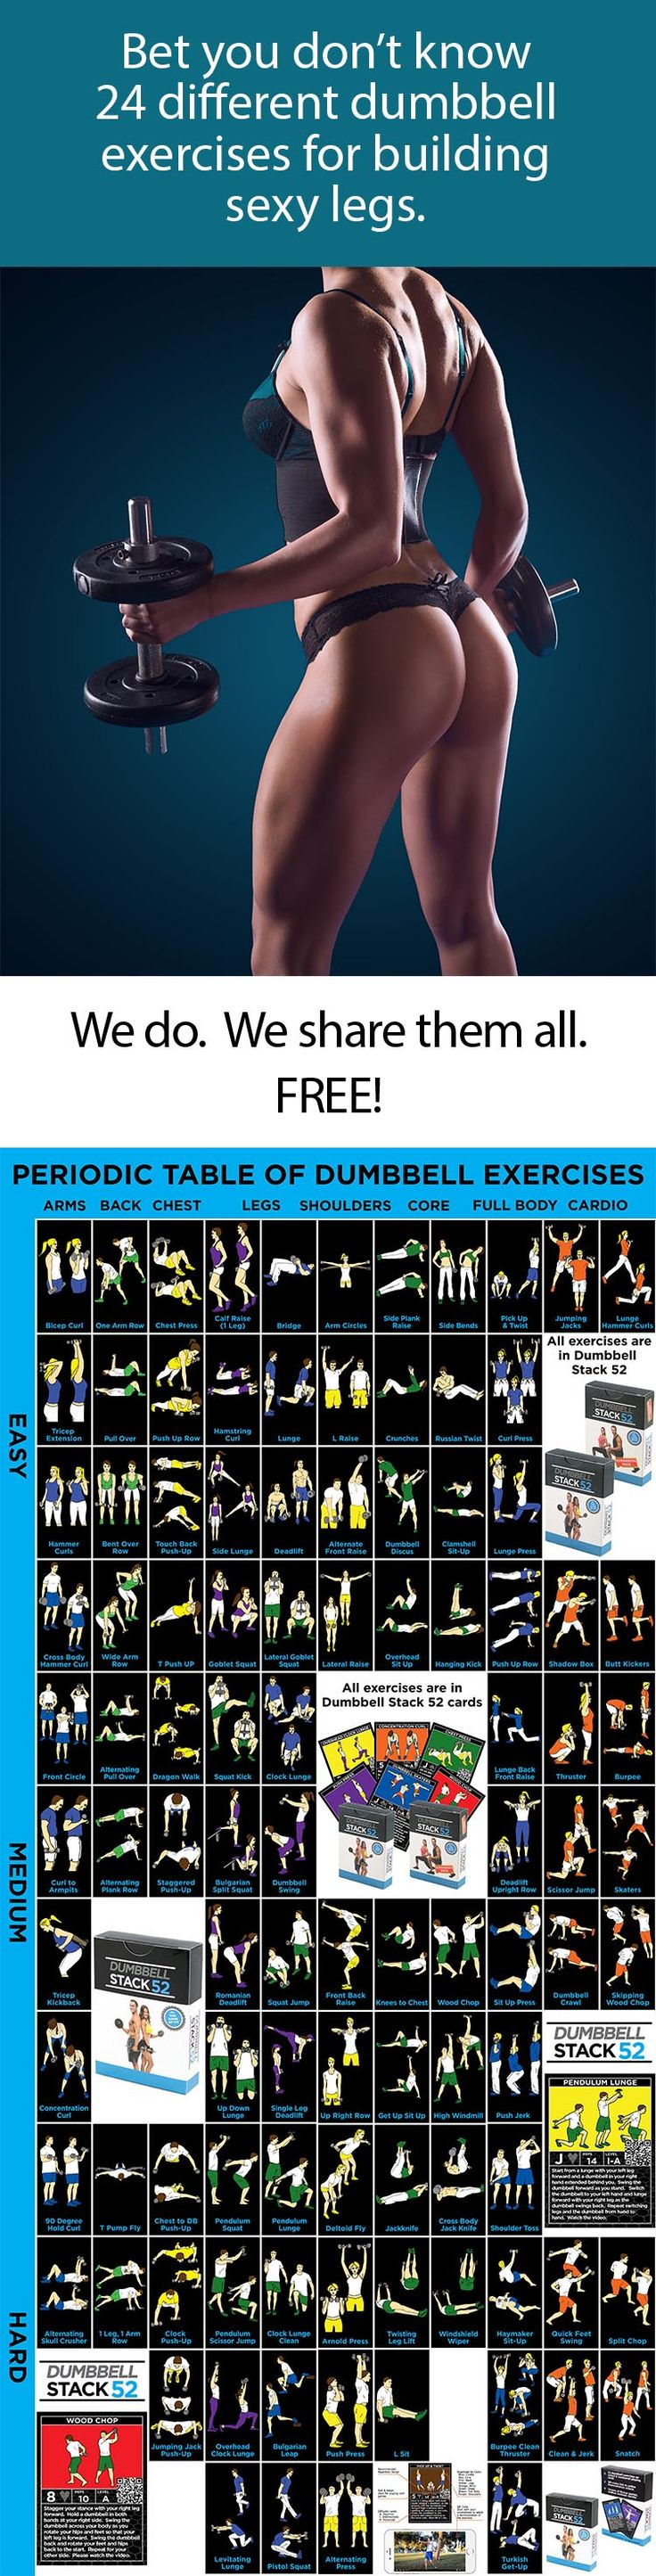 Best 25 group periodic table ideas on pinterest periodic table best 25 group periodic table ideas on pinterest periodic table group 1 periodic table of the elements and periodic table gamestrikefo Choice Image